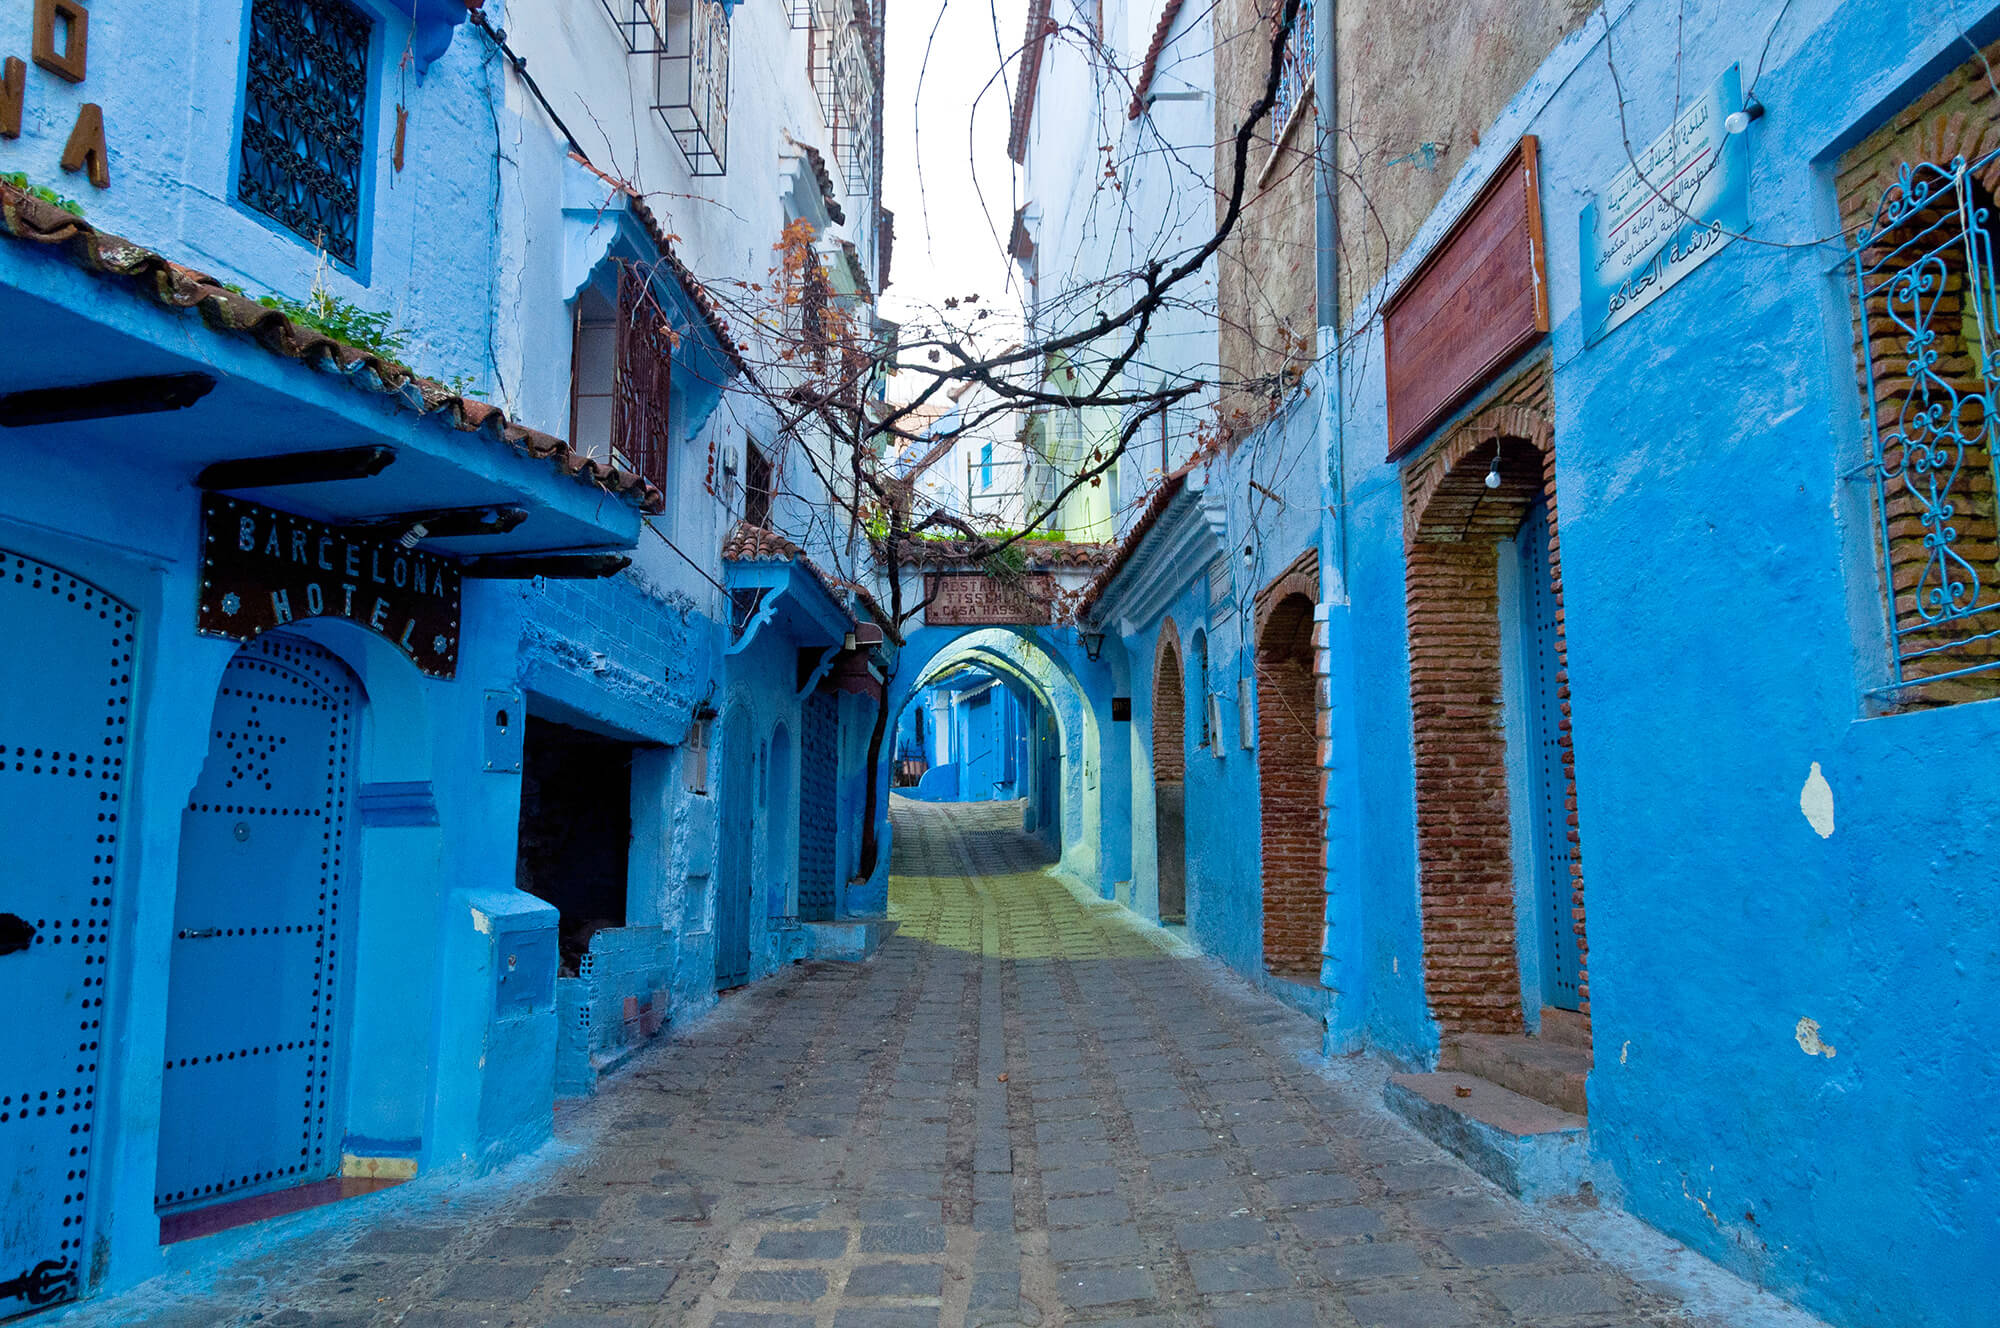 Sahara Desert Tour - Sightseeing in and around Chefchaouen